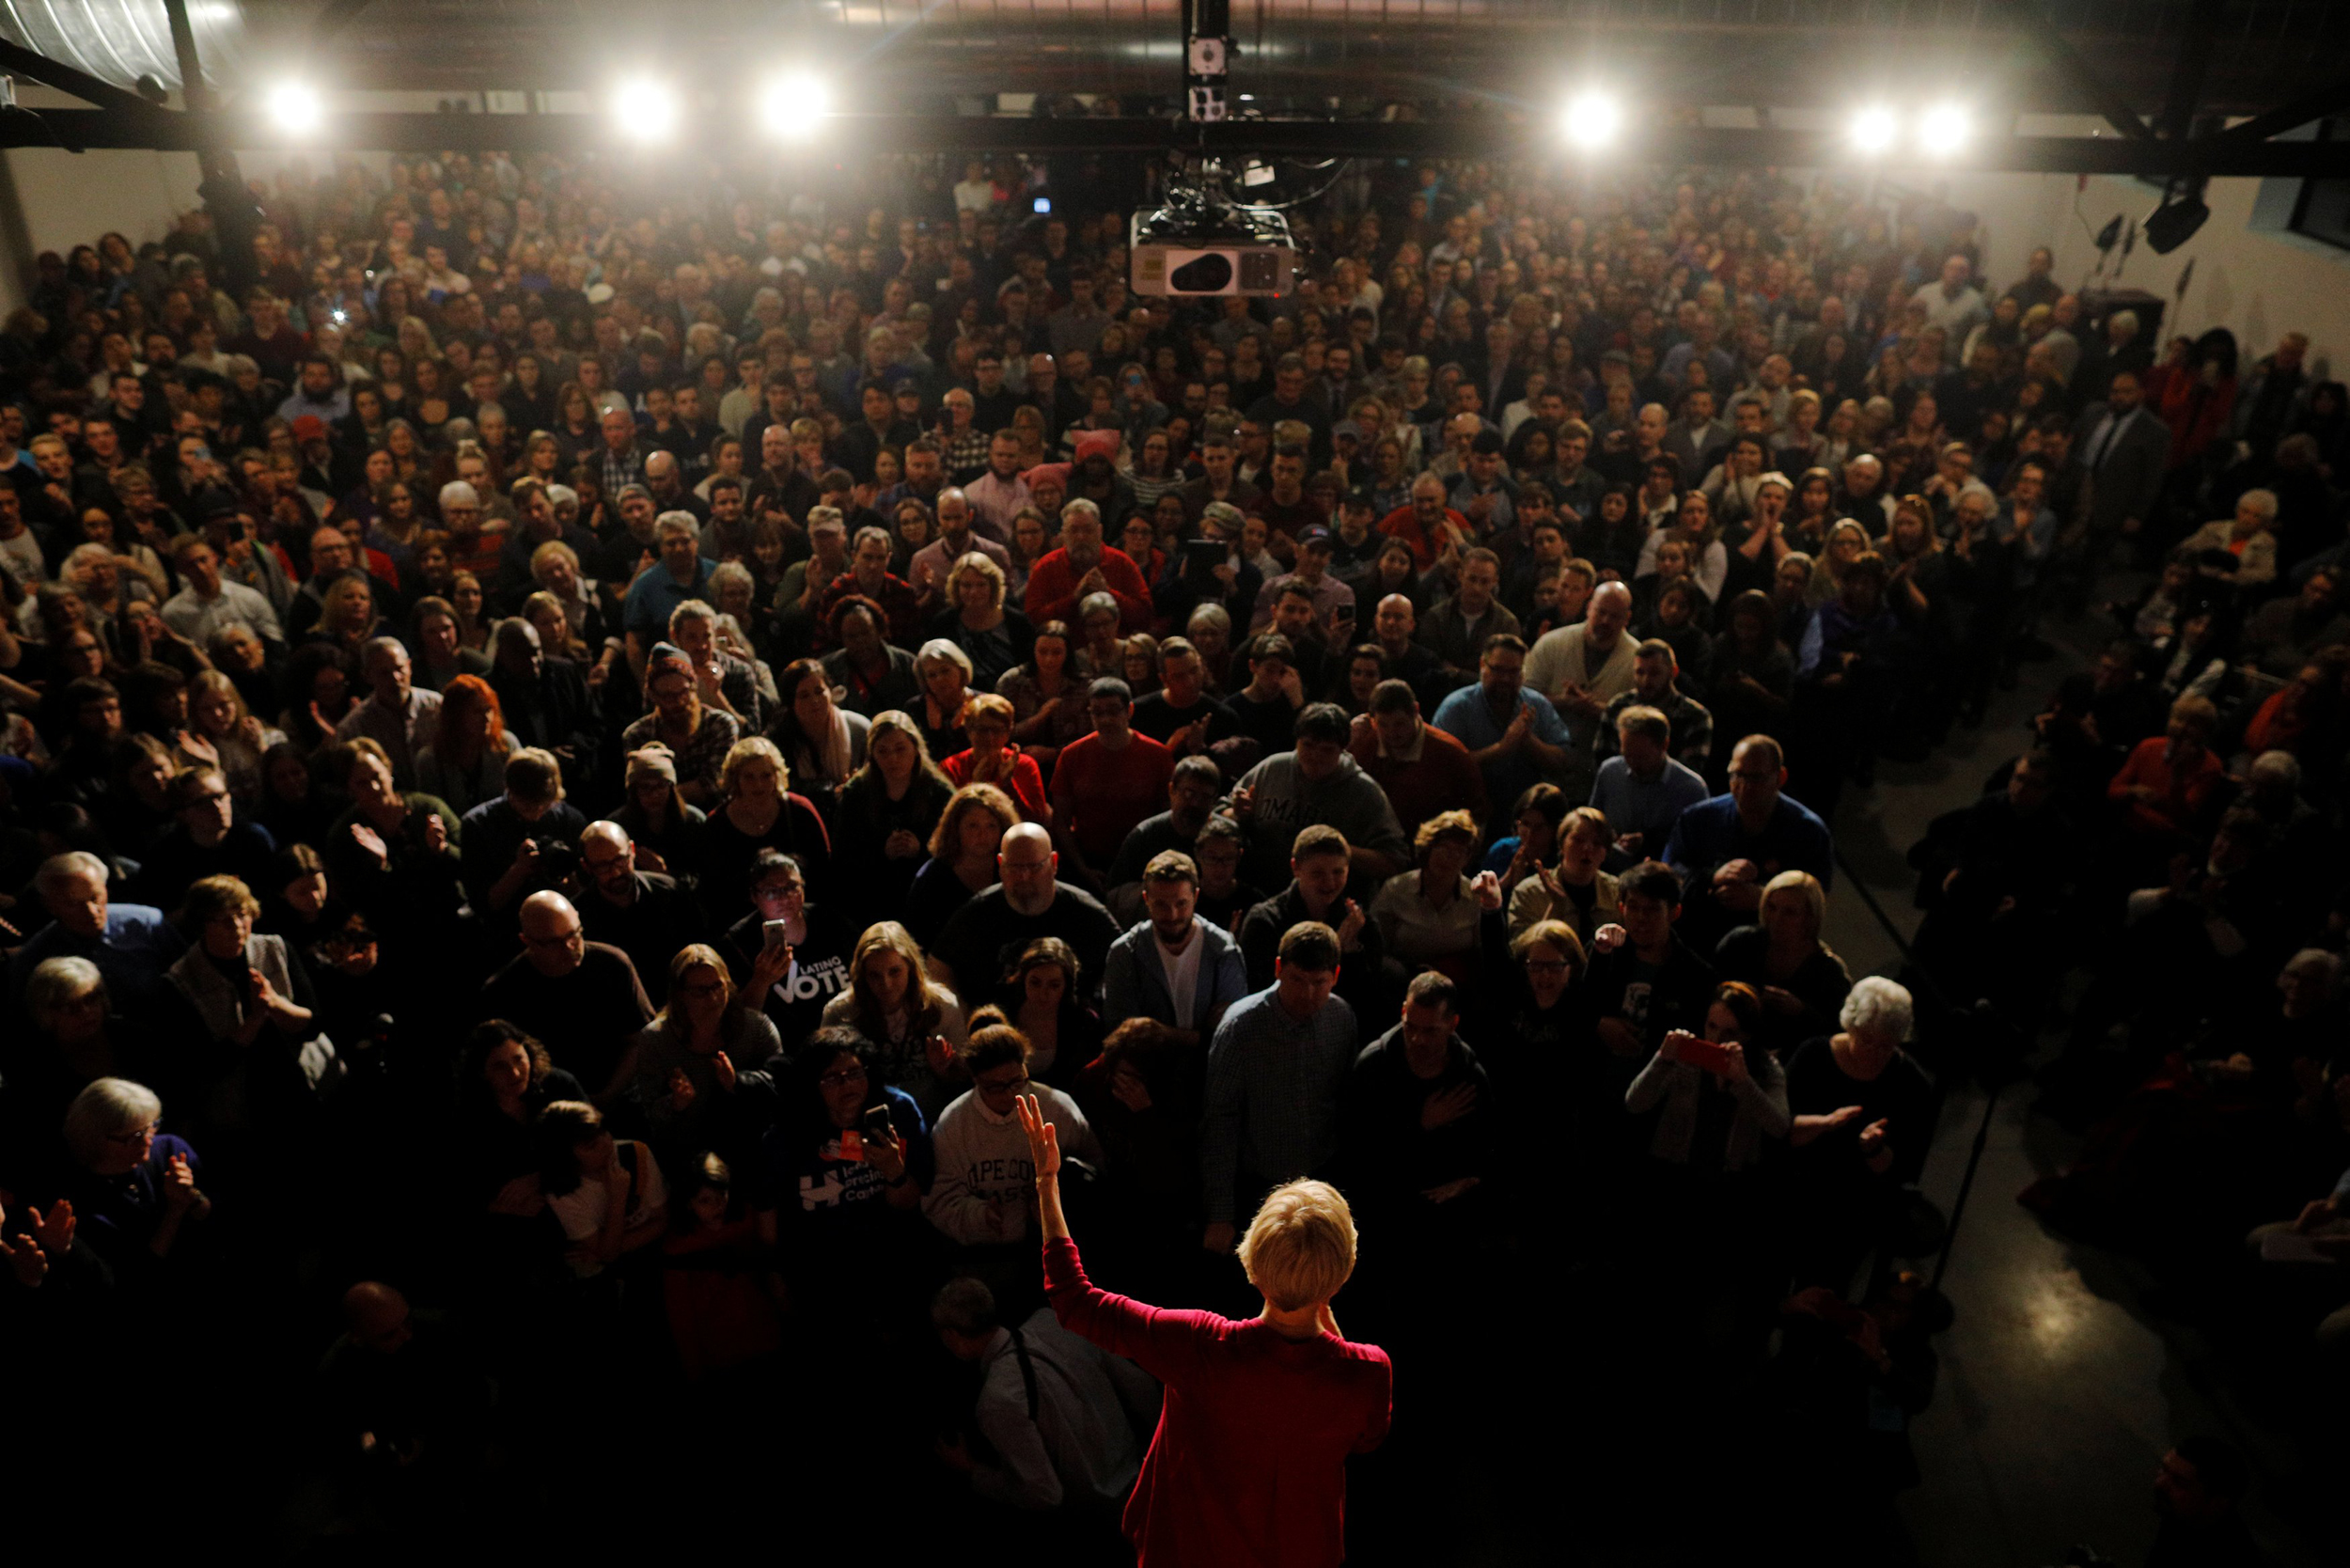 Warren wows in first campaign swing but electability questions follow her